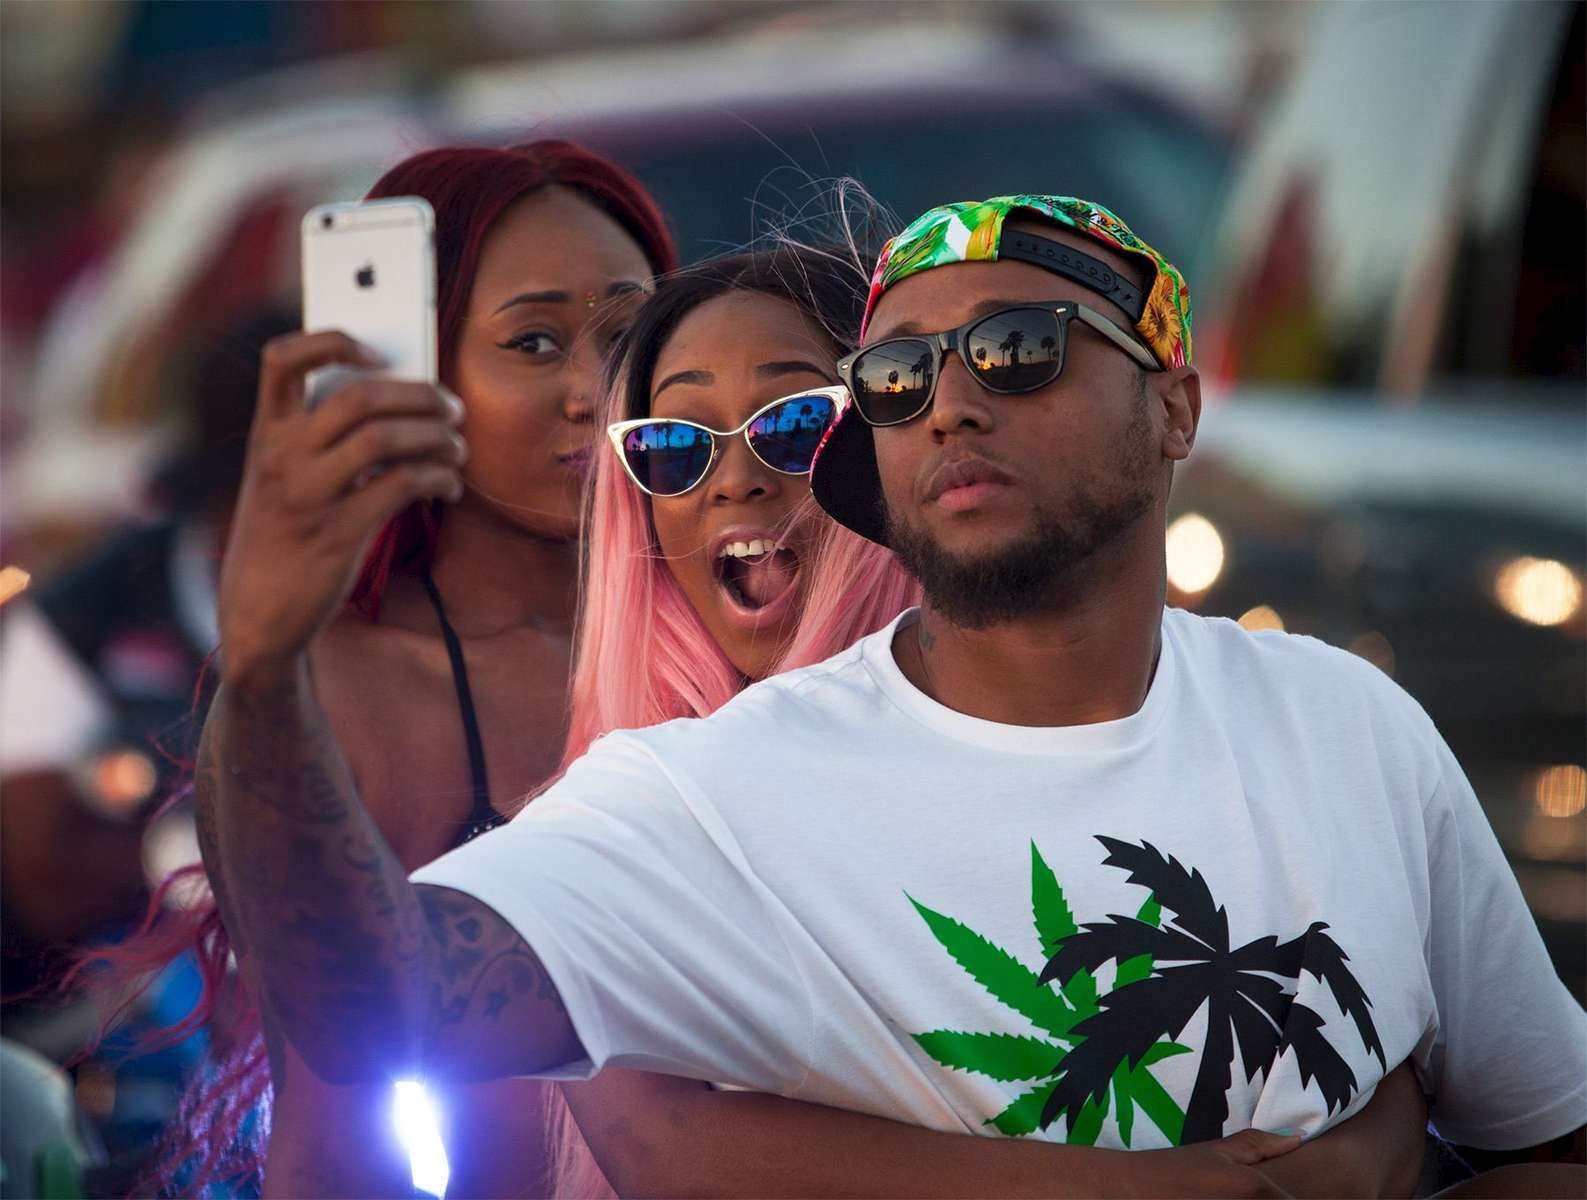 Festival goers take a group selfie while waiting in traffic on Ocean Boulevard during the 2015 Atlantic Beach Memorial Day BikeFest in Myrtle Beach, South Carolina May 24, 2015. After three people were killed and seven wounded in shootings during 2014 Bikefest, State officials called for an end to the event that draws thousands to the family-friendly beach town. Their efforts were unsuccessful. Bikers returned to Myrtle Beach - just a week after a bloody motorcycle gang shootout in Waco, Texas. But this time authorities are more prepared, with dozens of new surveillance cameras and a police force three times the size of last year's. REUTERS/Randall Hill